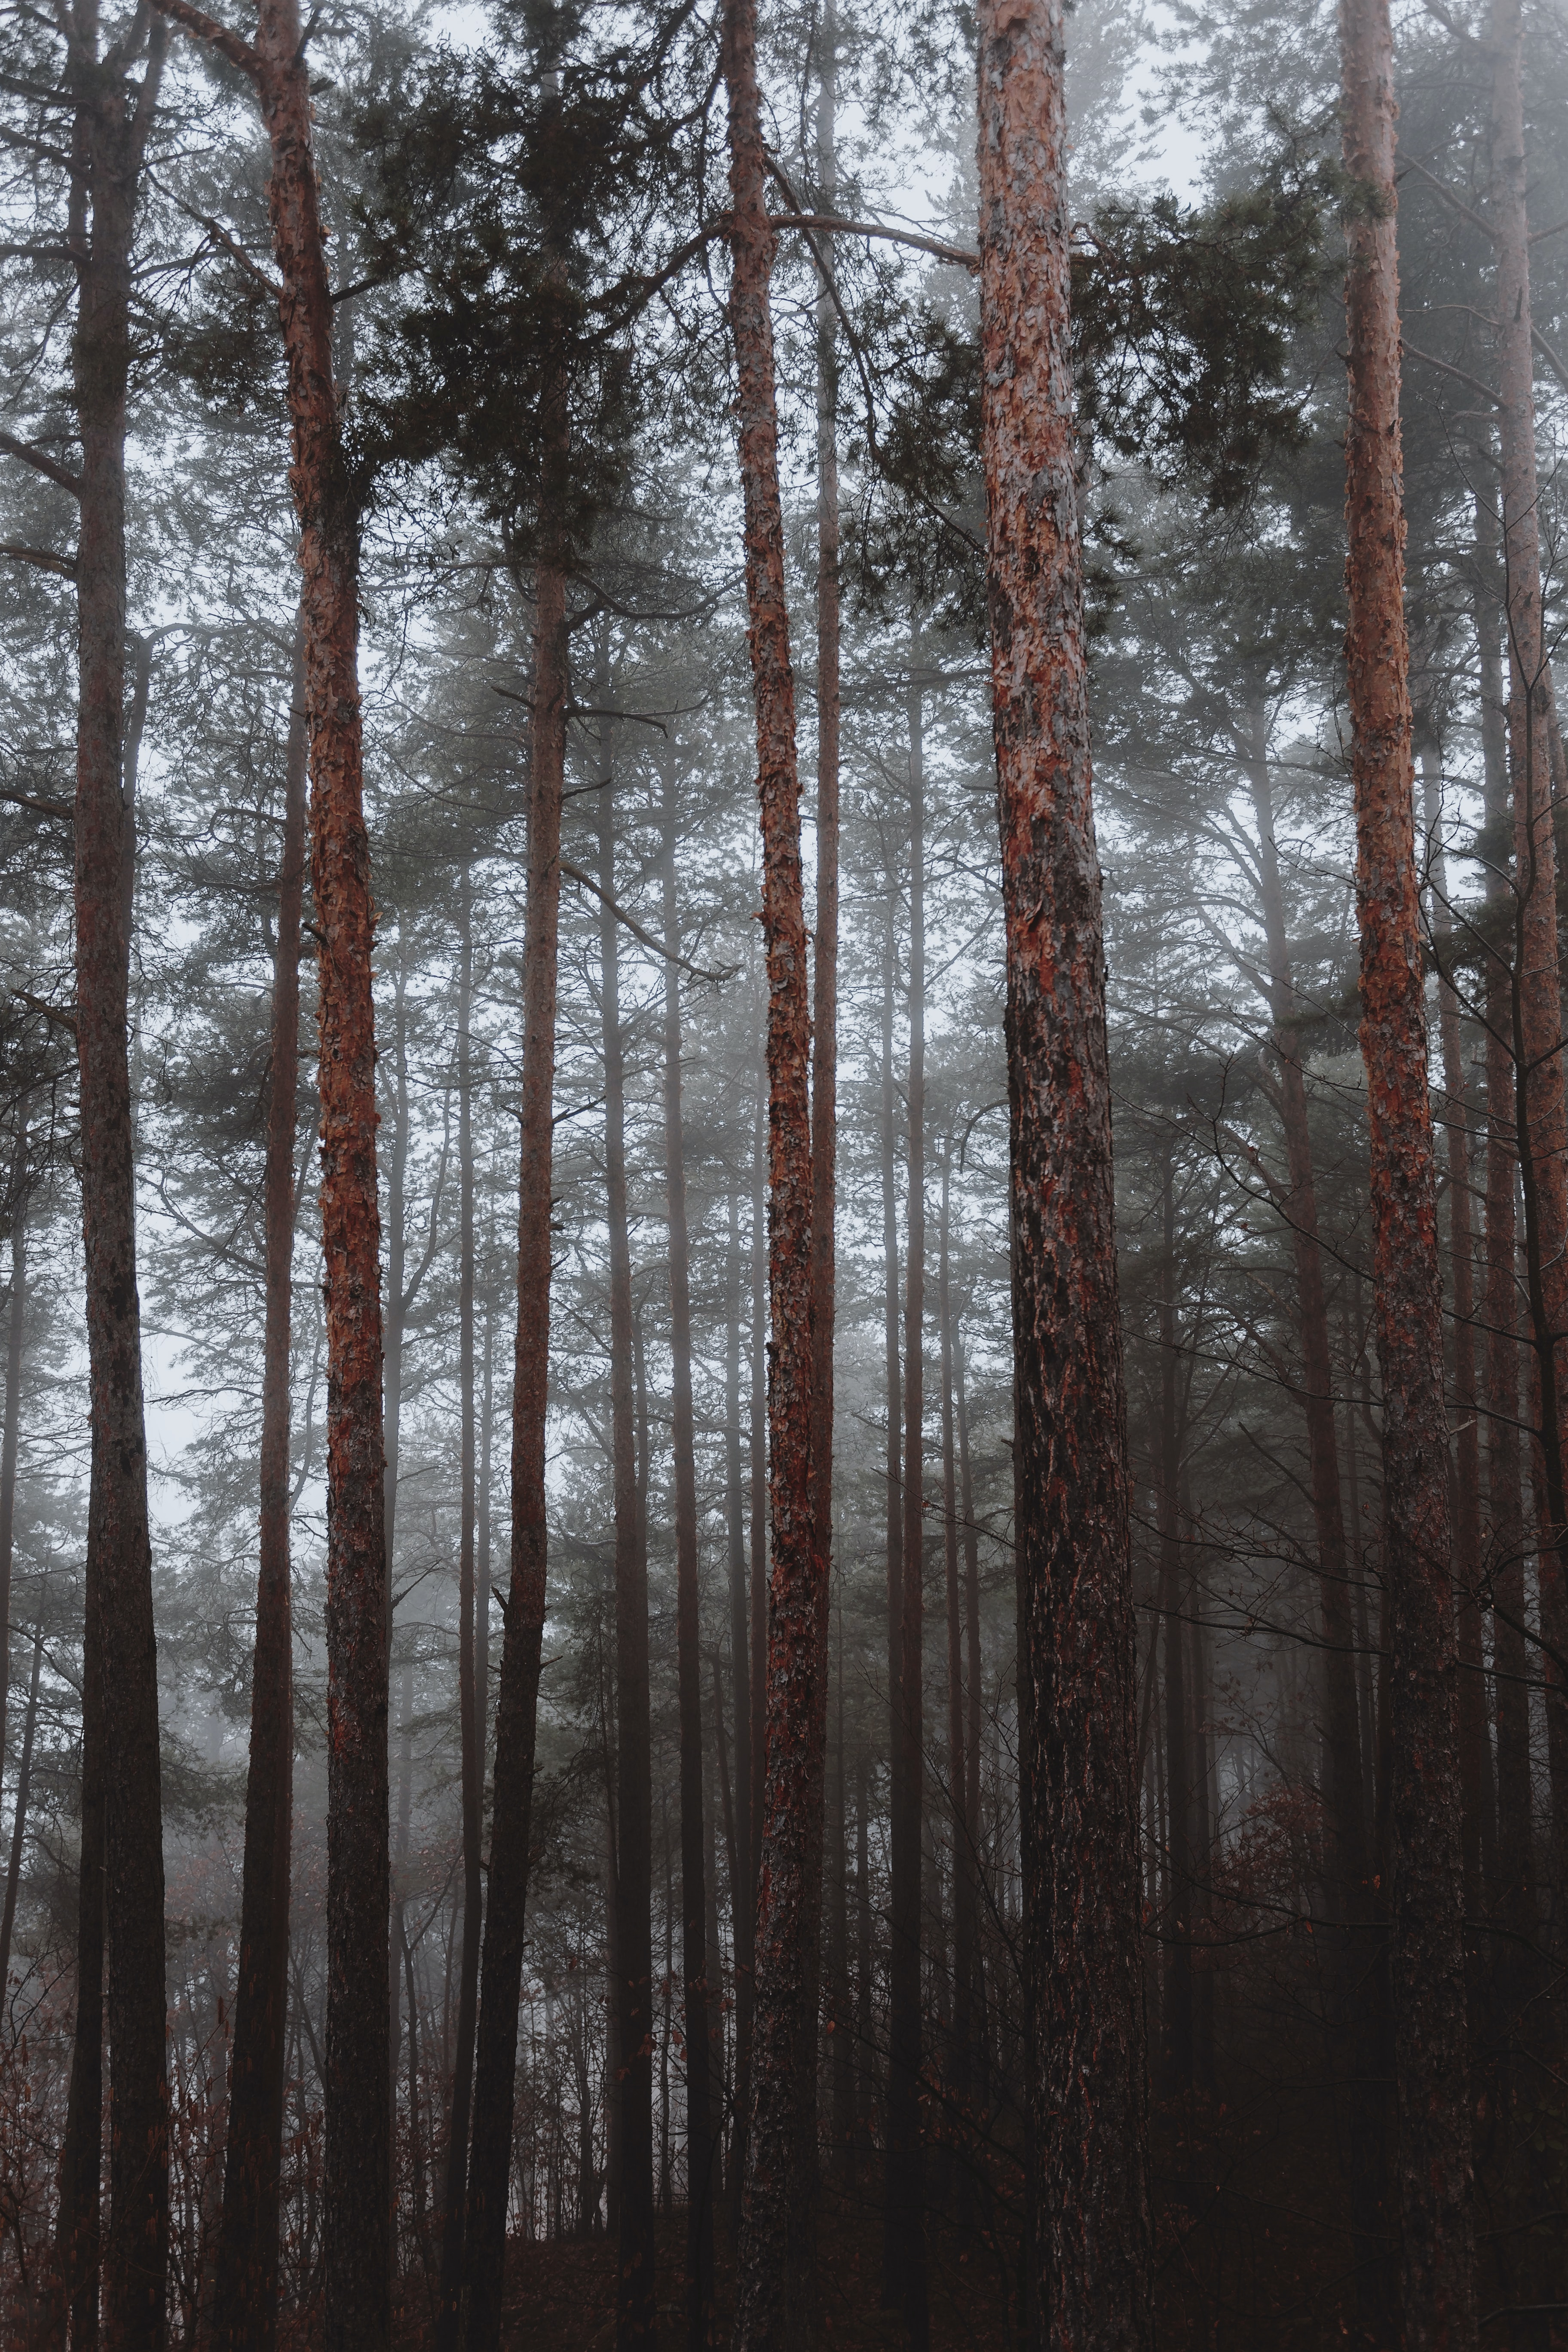 bunch of brown pine trees